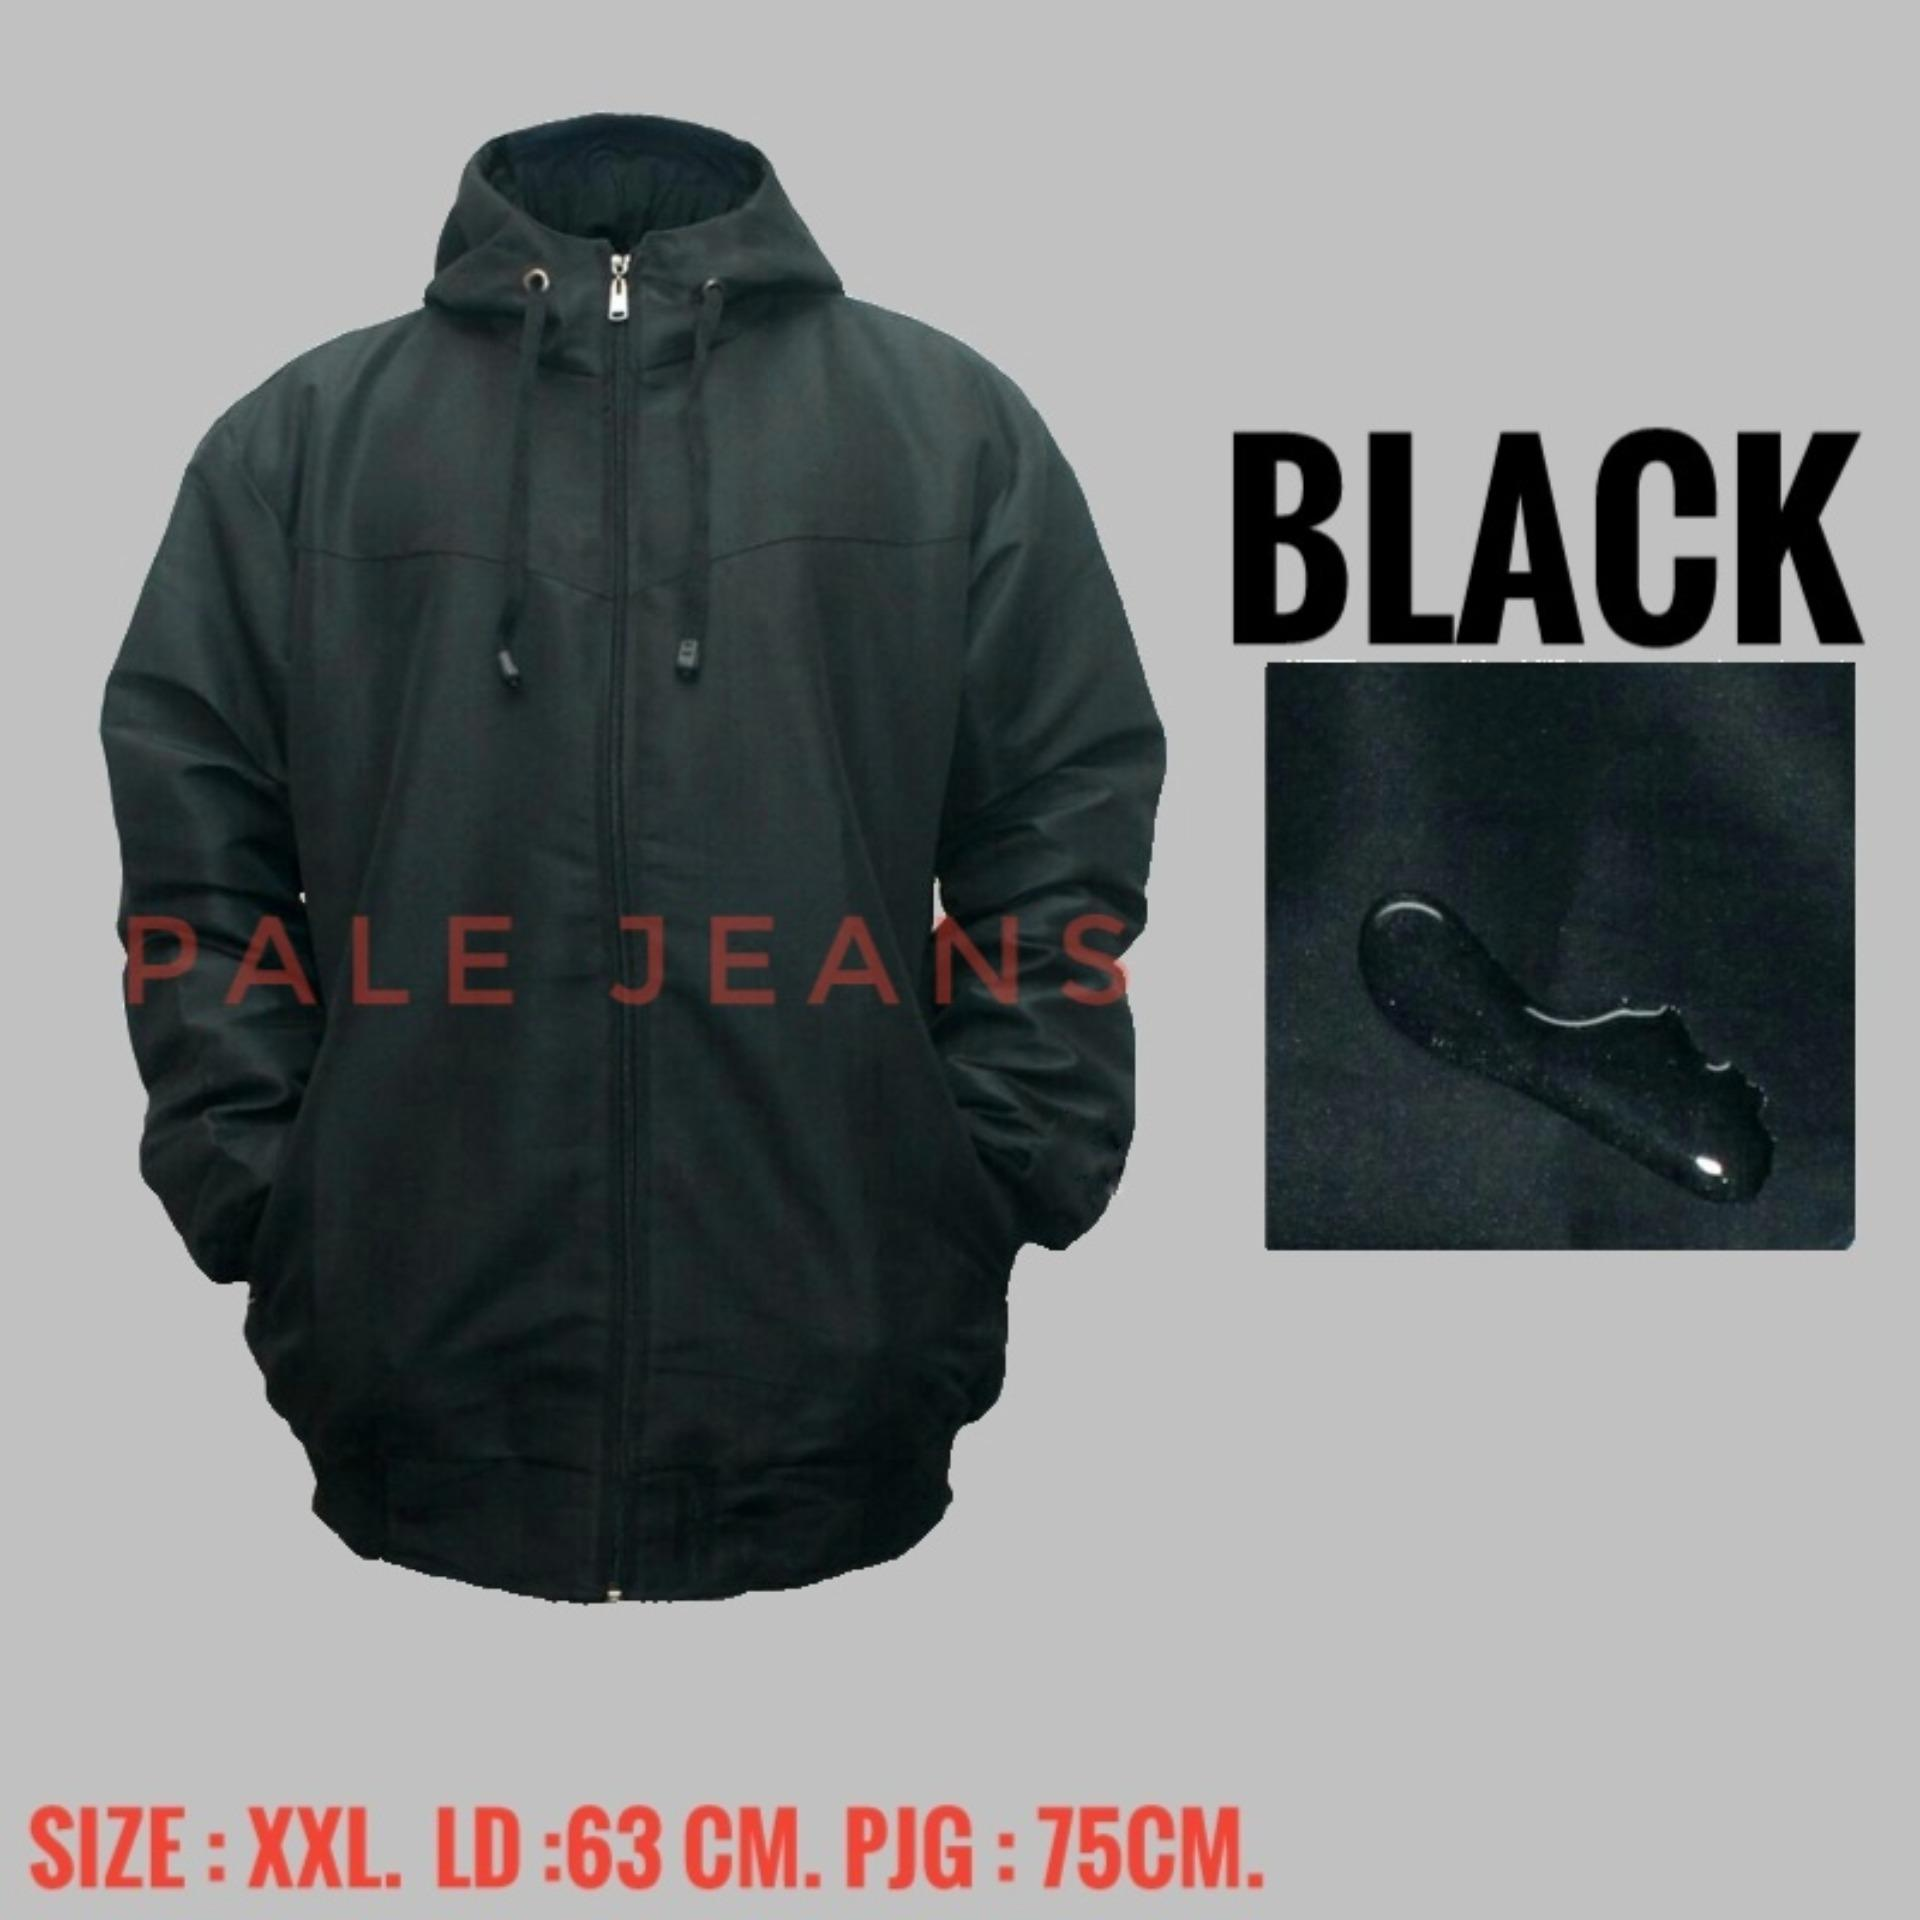 Palejeans - Jaket waterproof Anti air JUMBO BIG SIZE Pria.